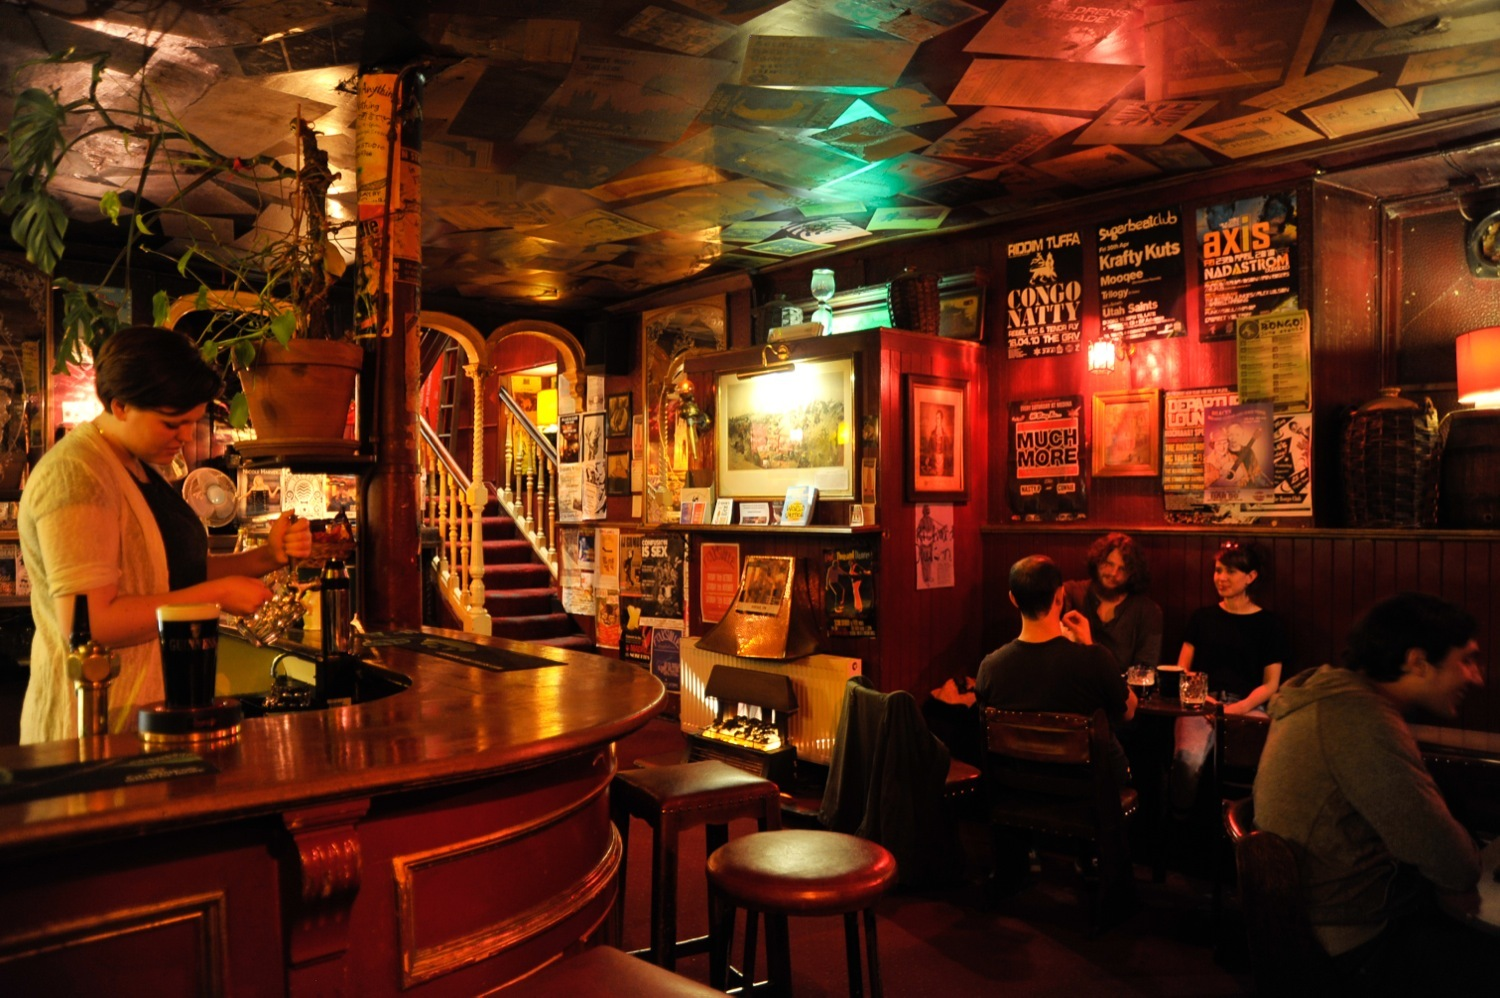 Edinburgh's best pubs - Bars and Pubs - Time Out Edinburgh